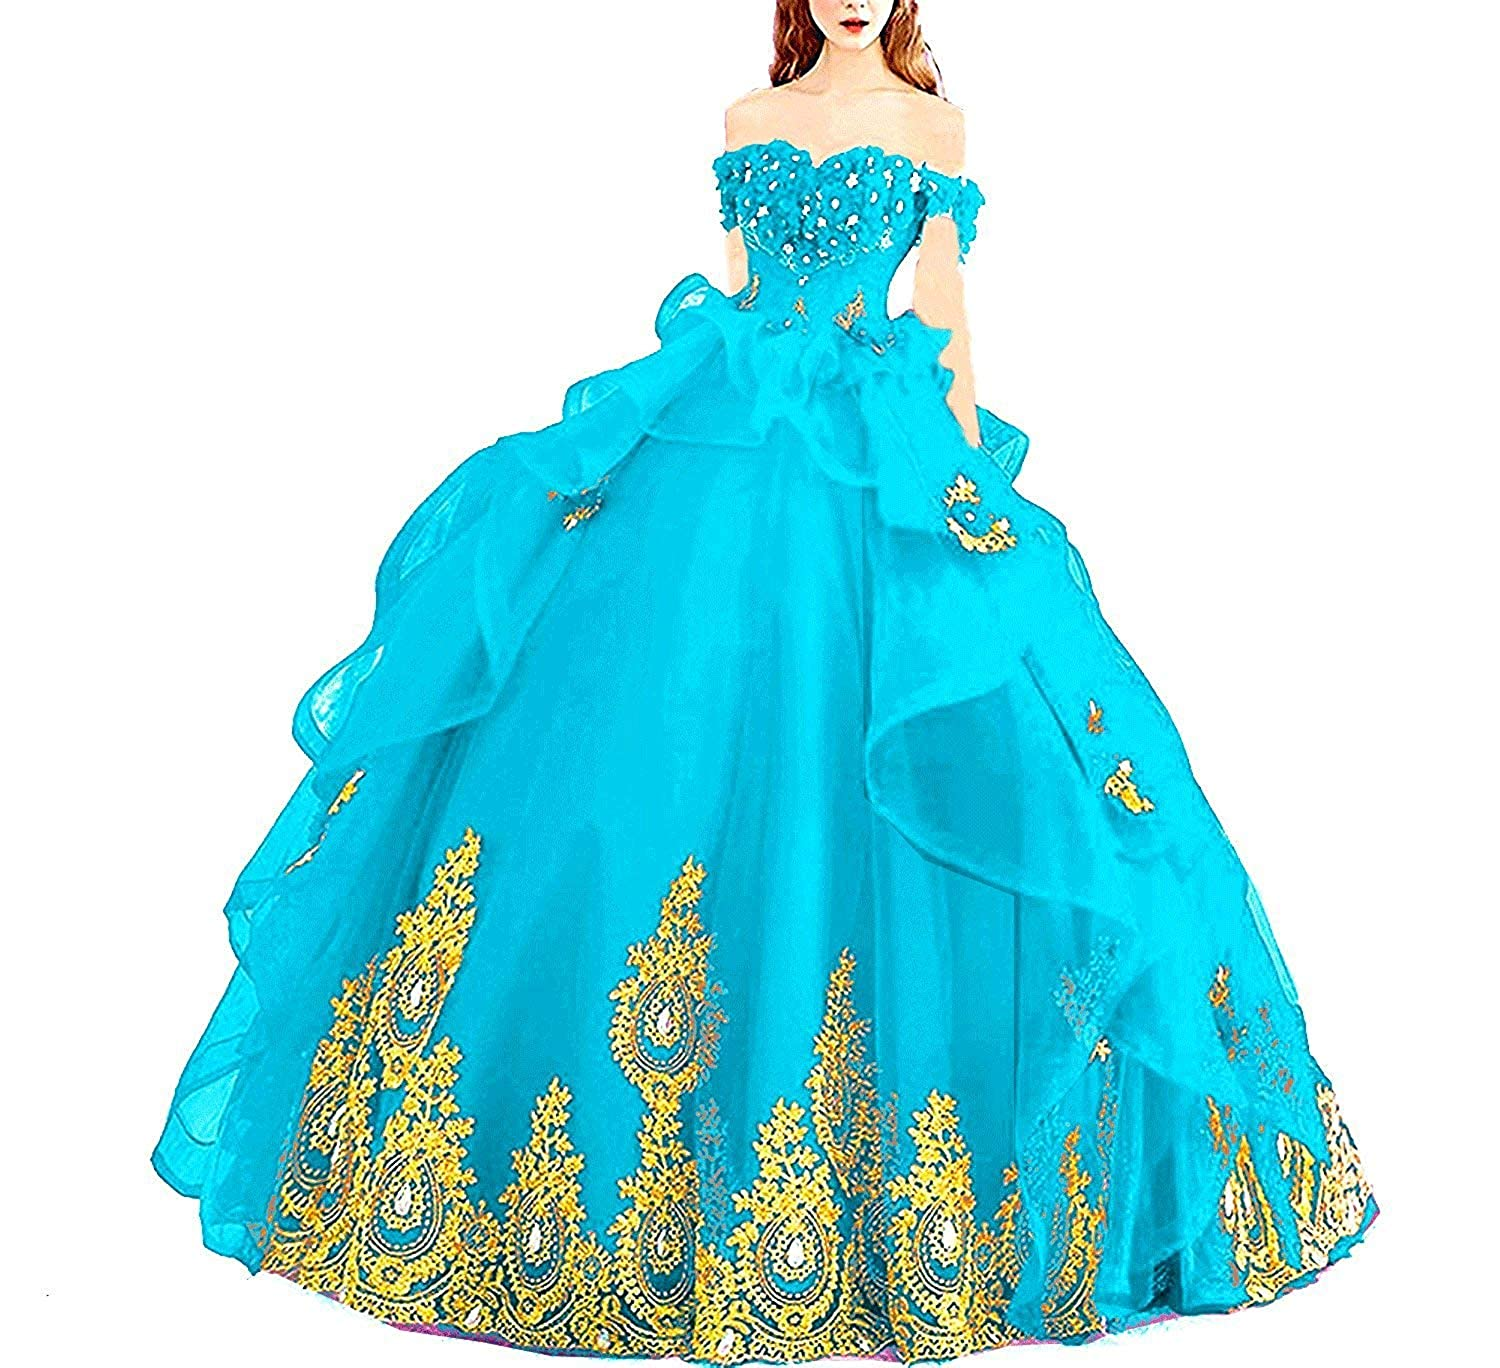 96963a99953 20KyleBird Gorgeous Off The Shoulder Gold Appliques Quinceanera Dresses  Beaded Organza Prom Evening Party Ball Gowns at Amazon Women s Clothing  store